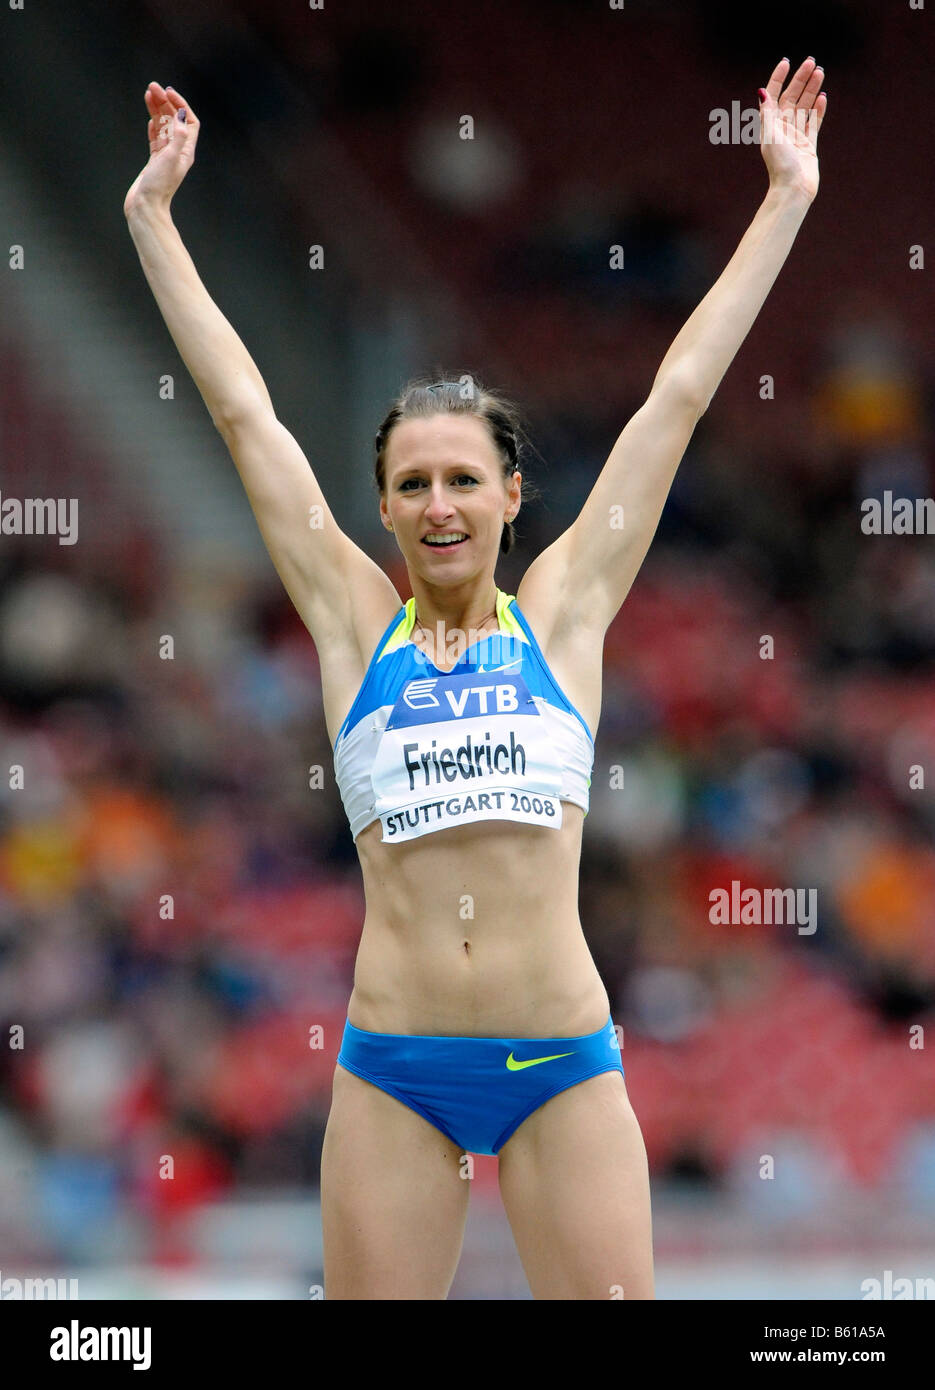 Ariane FRIEDRICH, GER, High Jump, at the IAAF 2008 World Athletics Final for track and field in the Mercedes-Benz - Stock Image